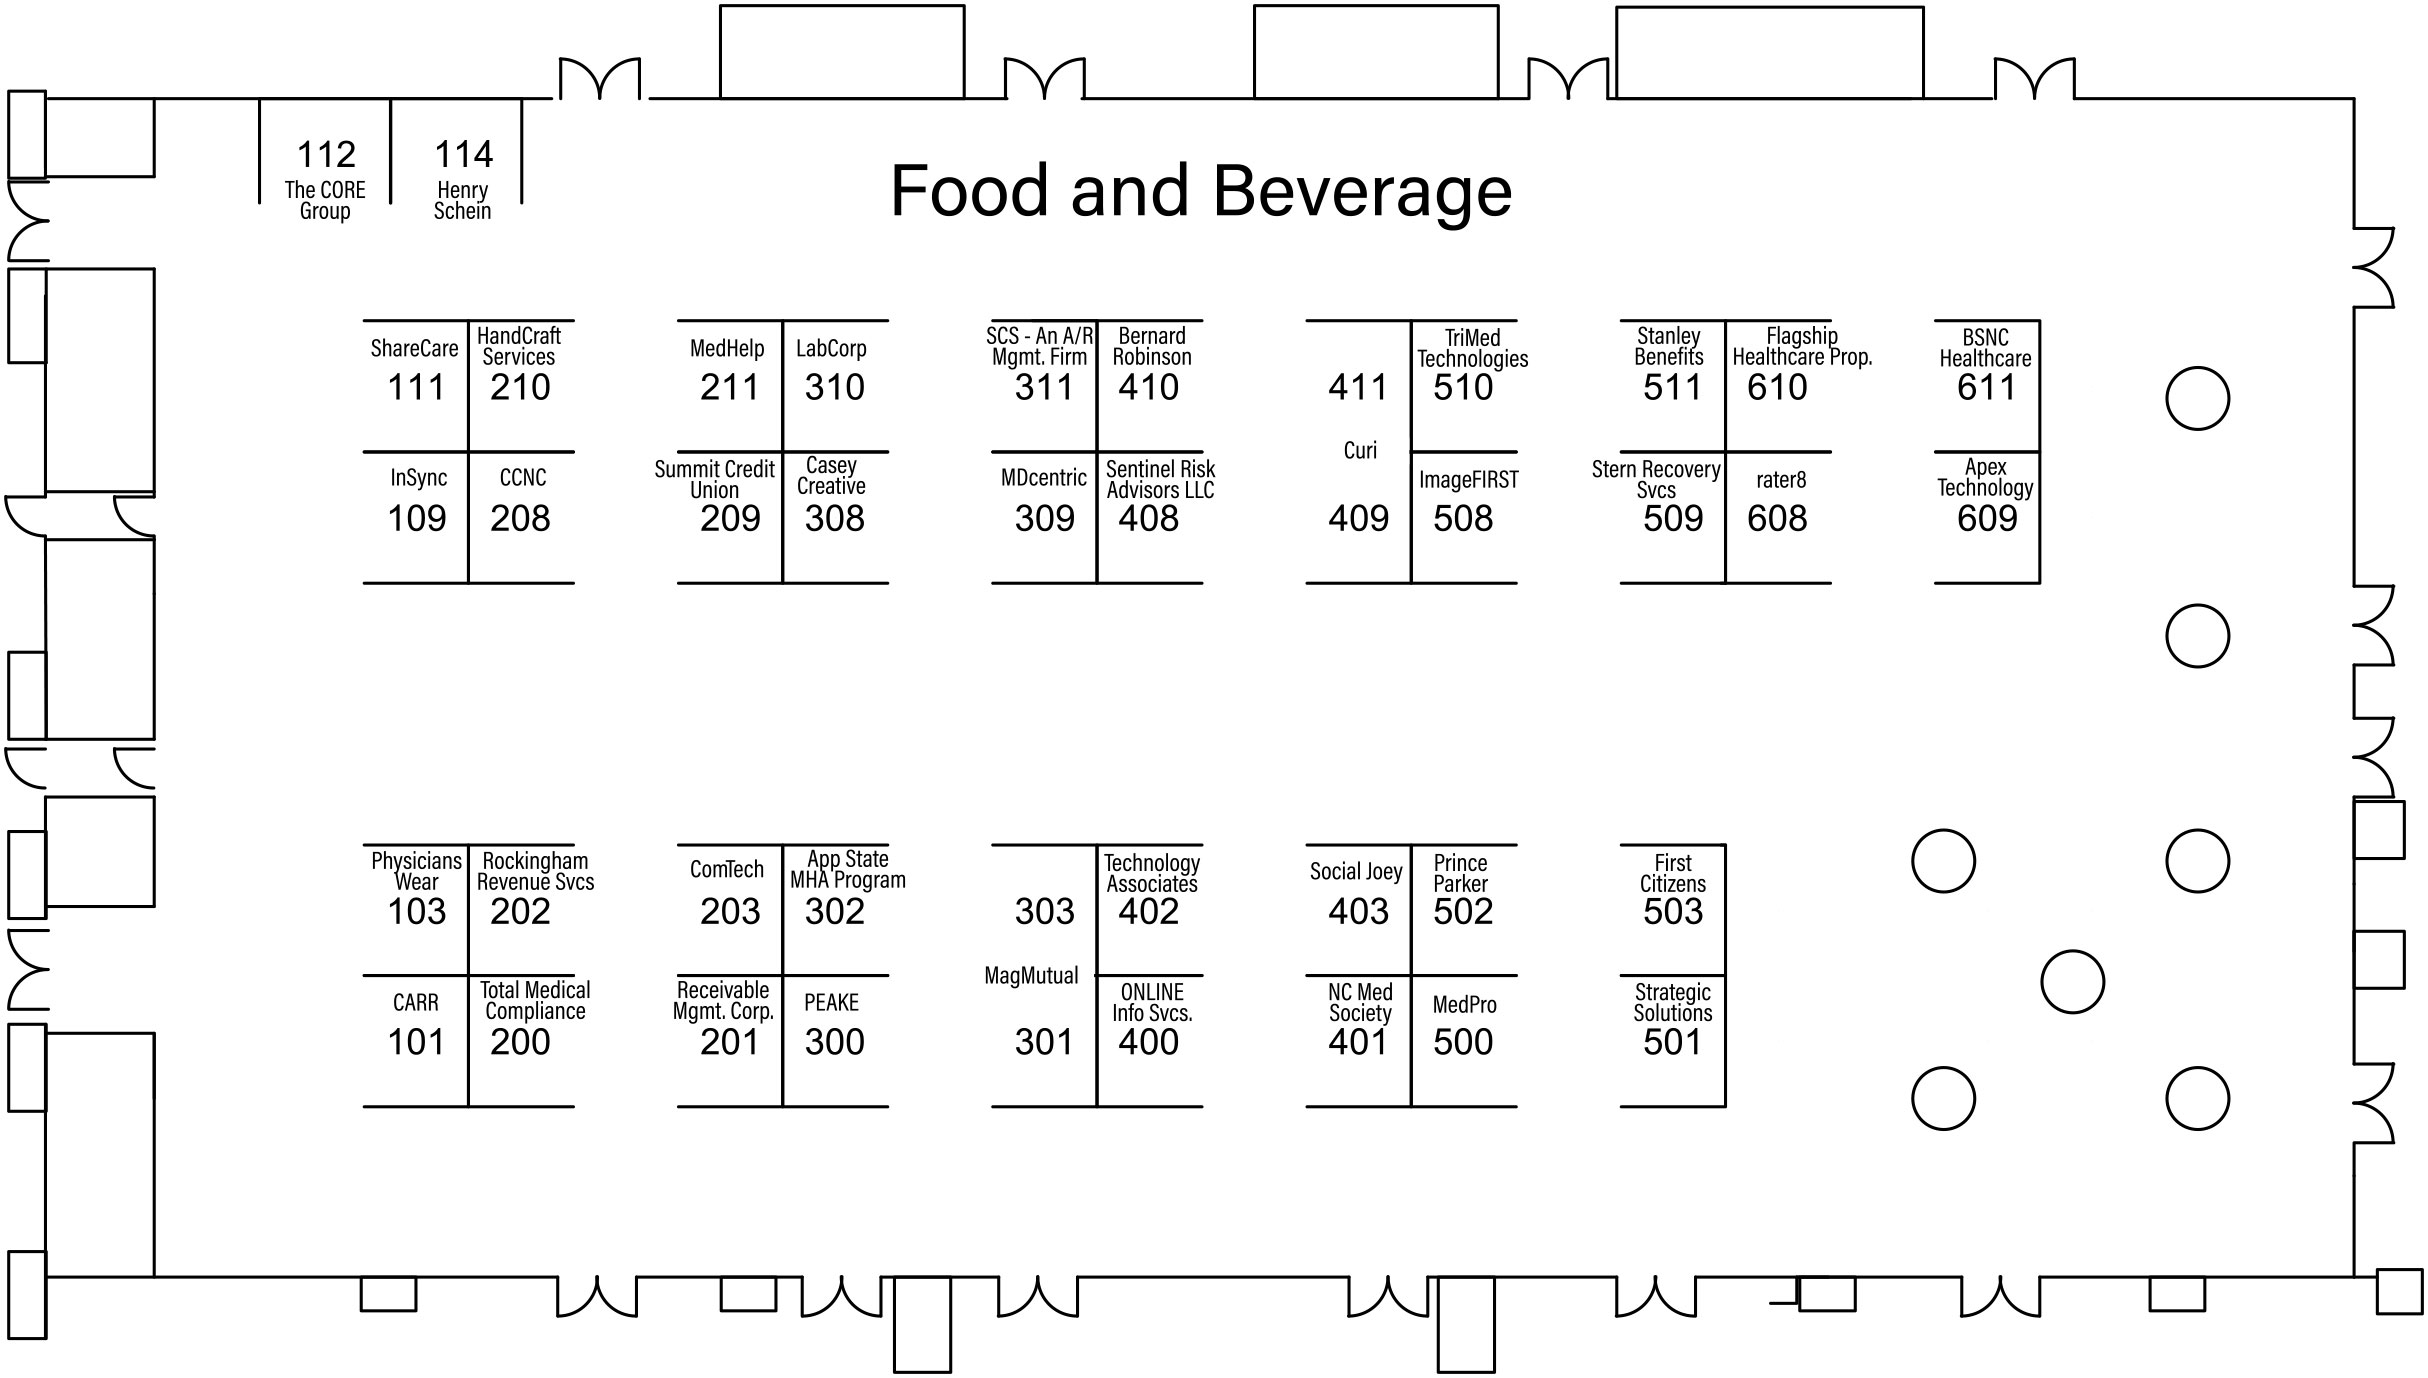 2021 Annual Conference Exhibit Hall Layout with Exhibitors